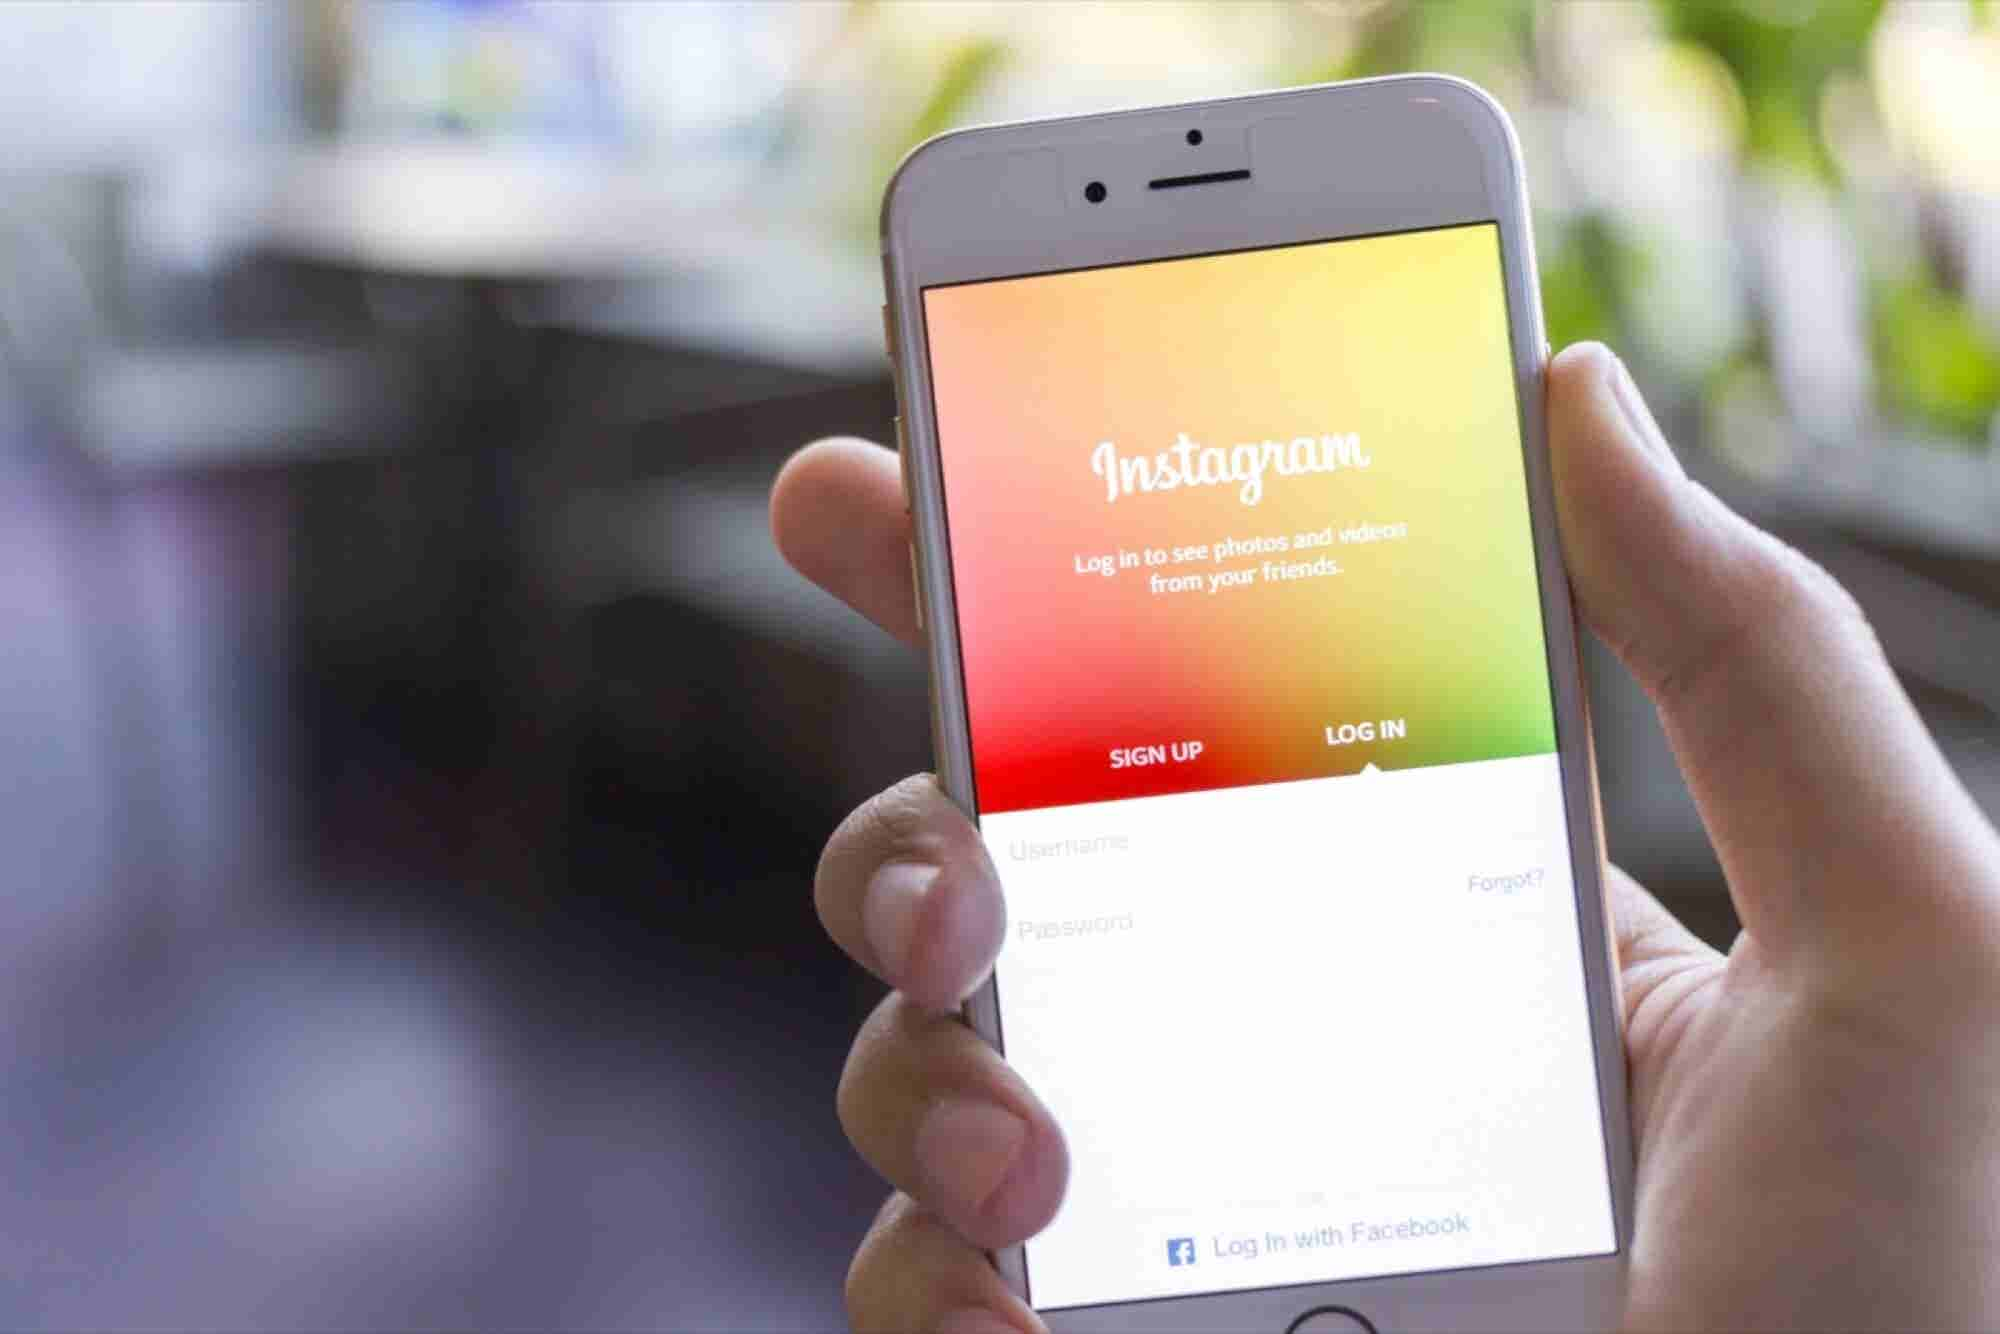 5 Things You Need to Know About Instagram's New Ad Platform